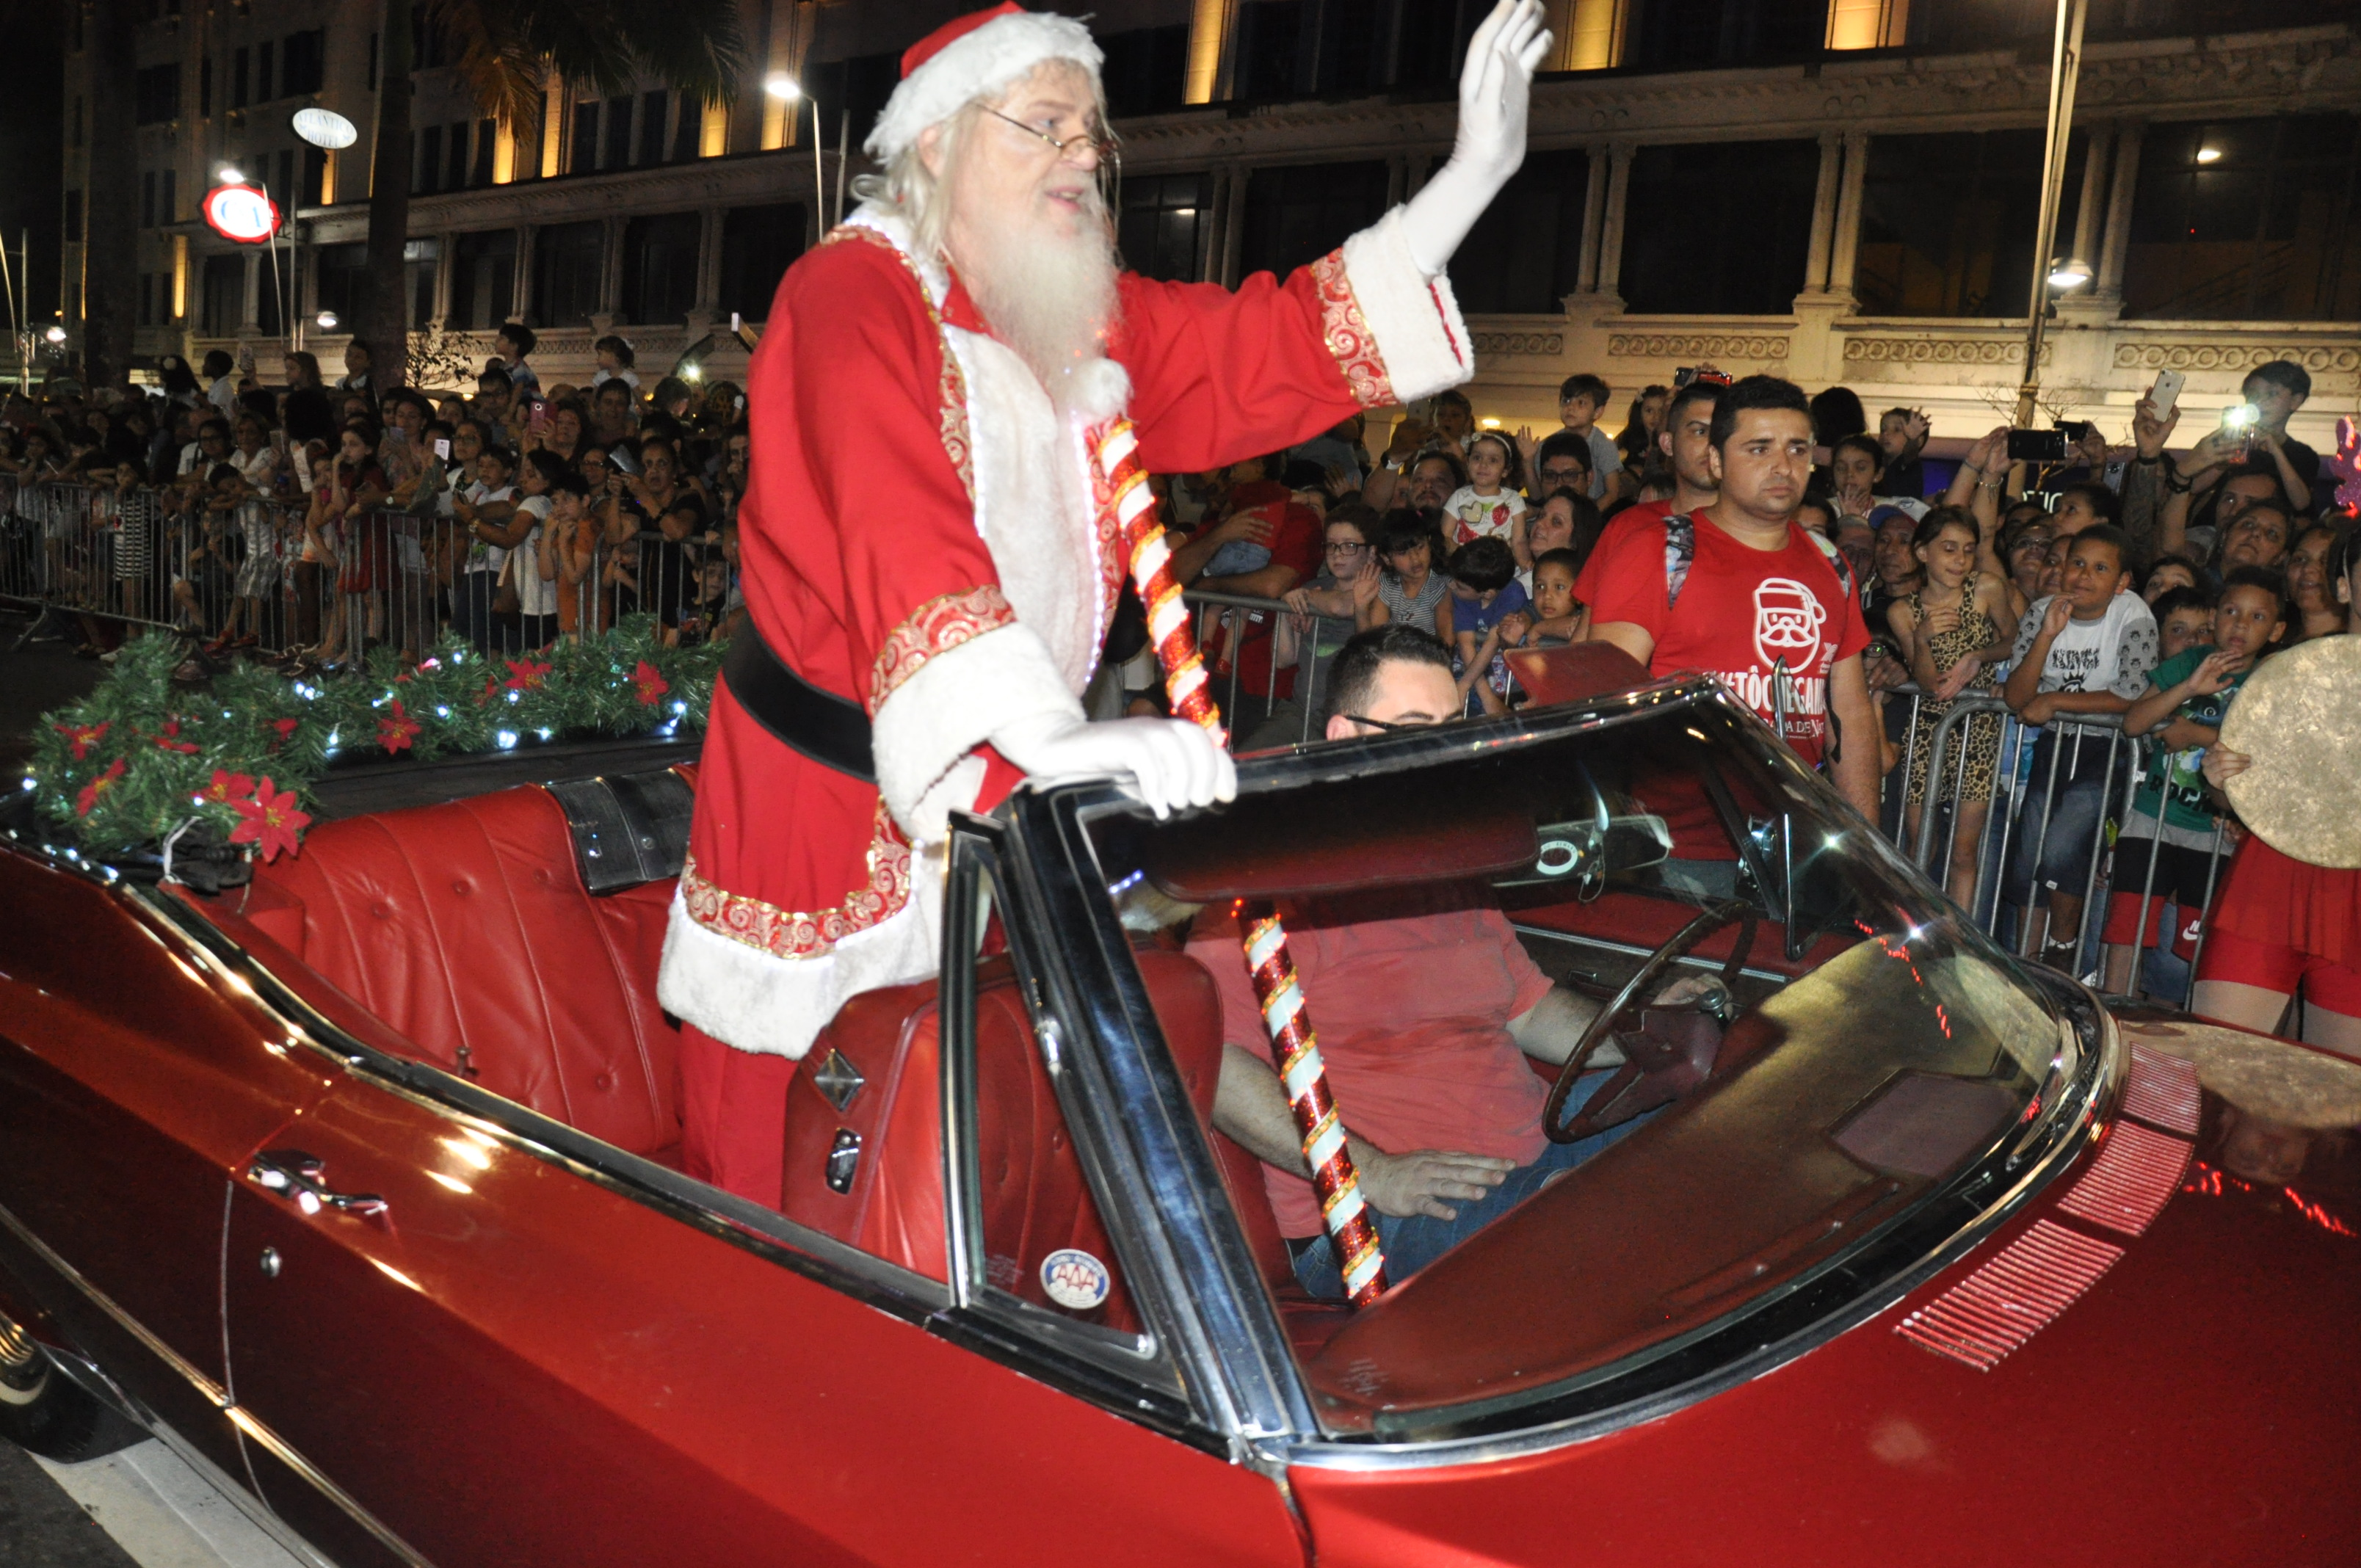 8ª Parada De Natal Terá Personagens, Shows E A Chegada Do Papai Noel